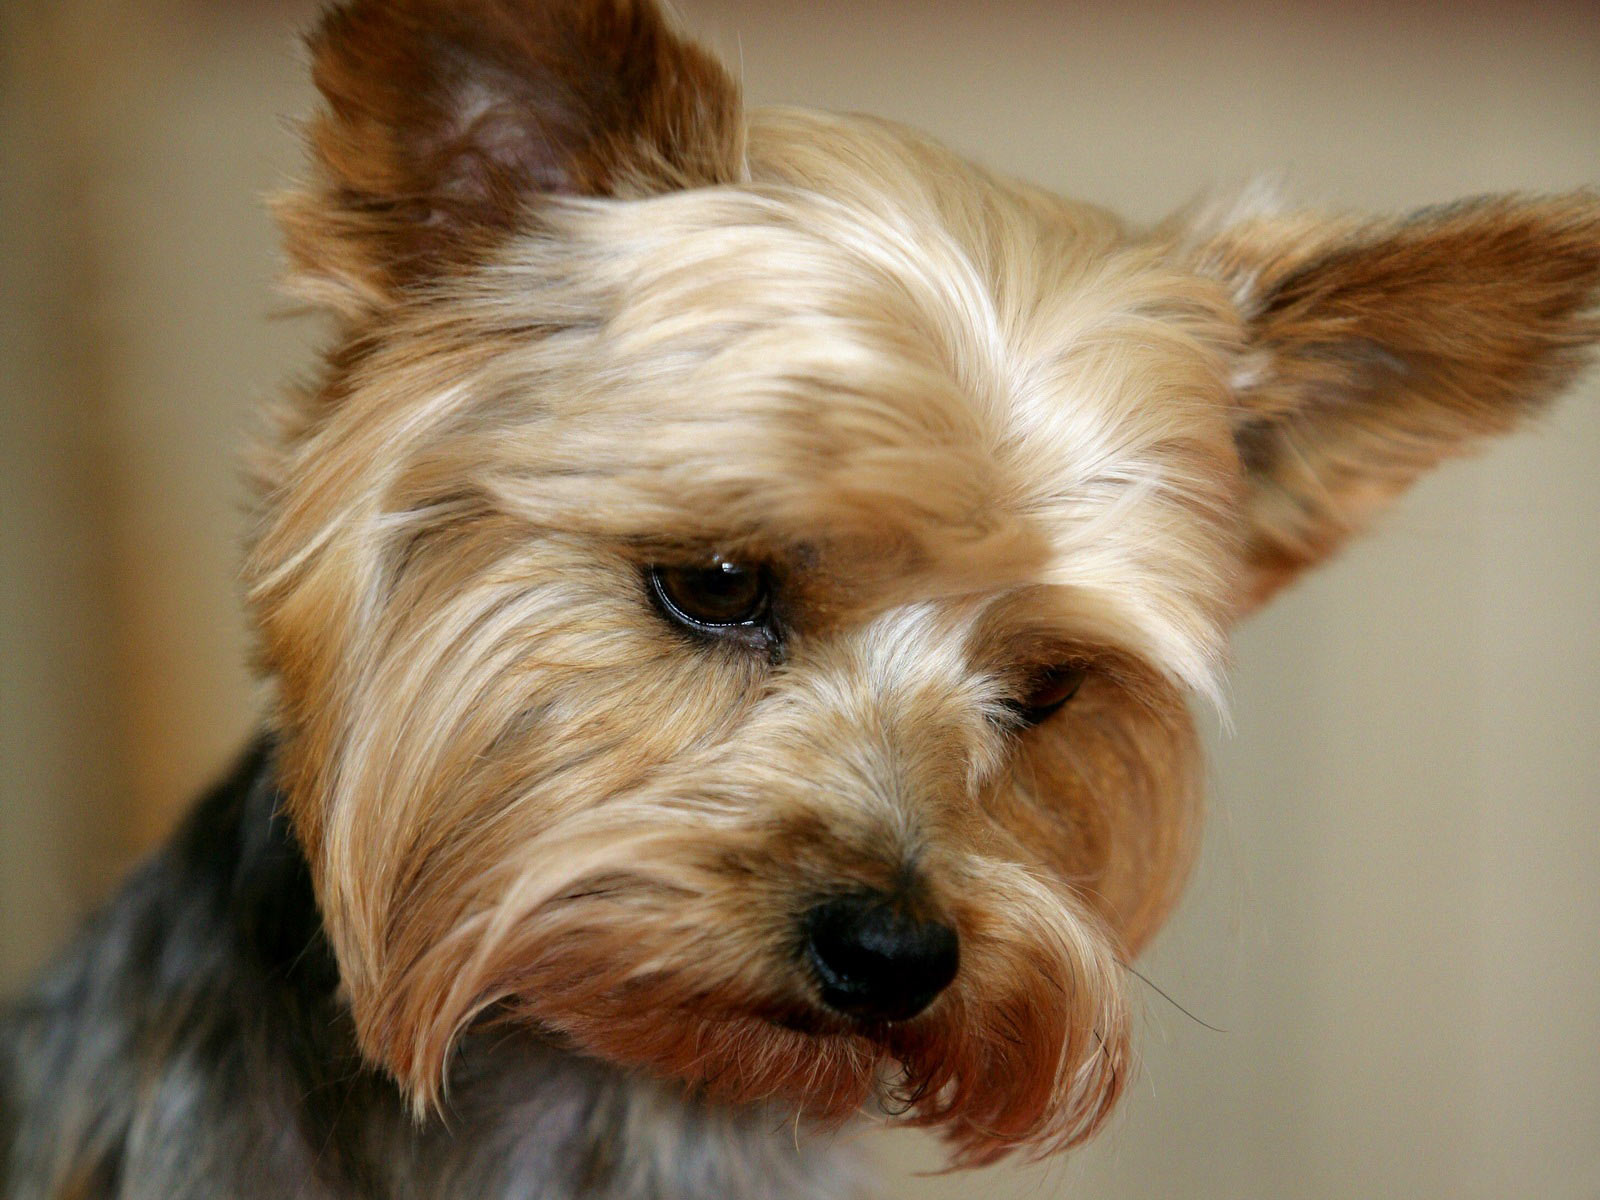 Yorkshire Terrier looking sad